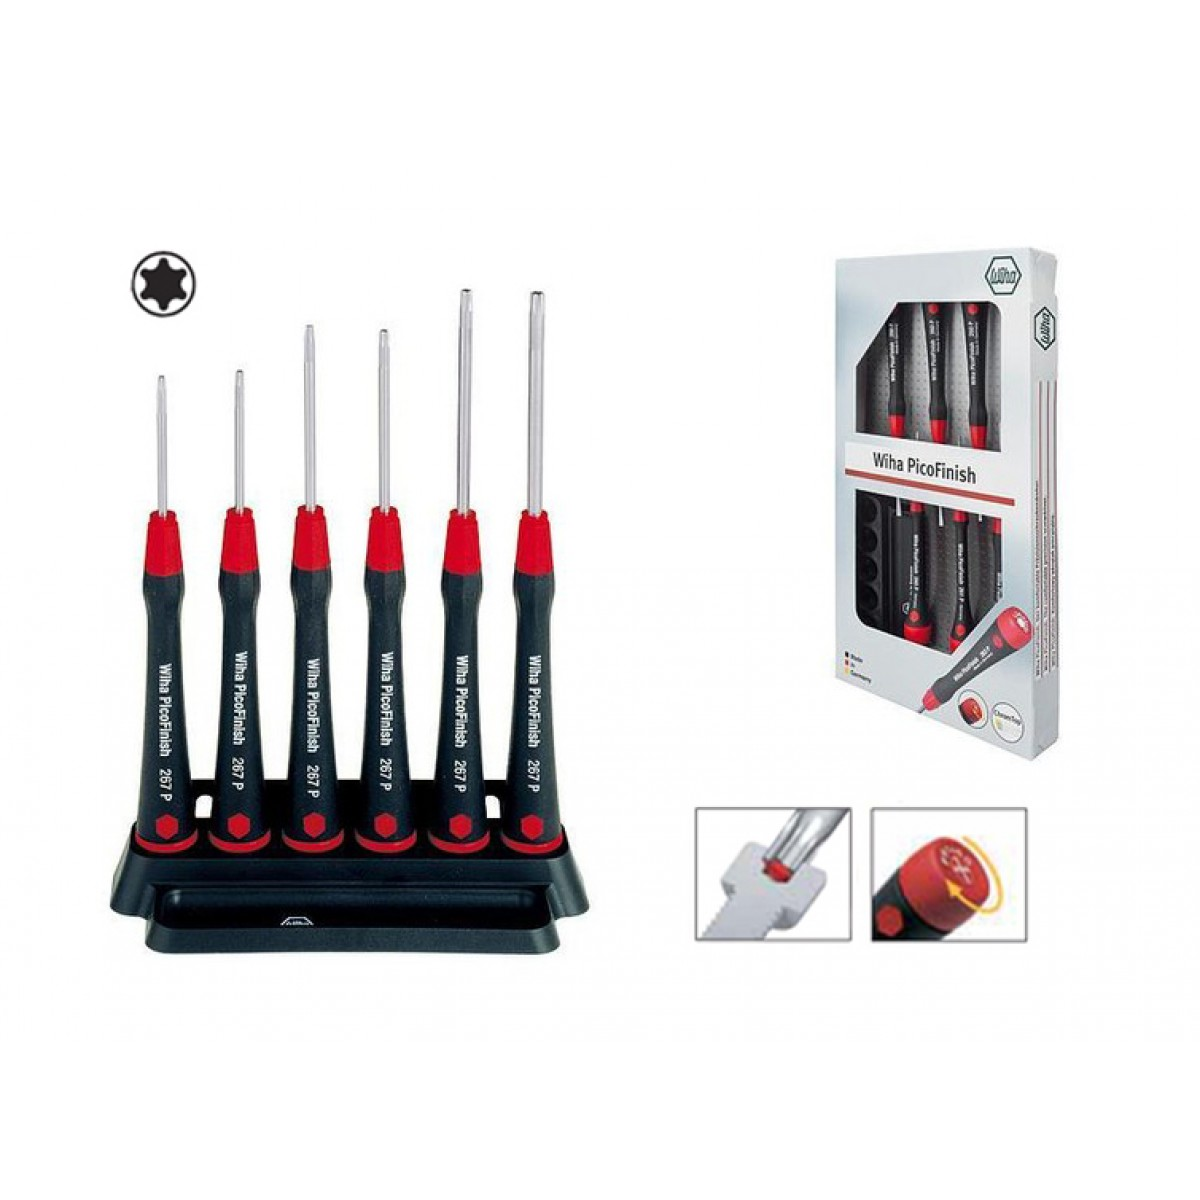 wiha 267p k6 picofinish torx screwdriver set 03765. Black Bedroom Furniture Sets. Home Design Ideas